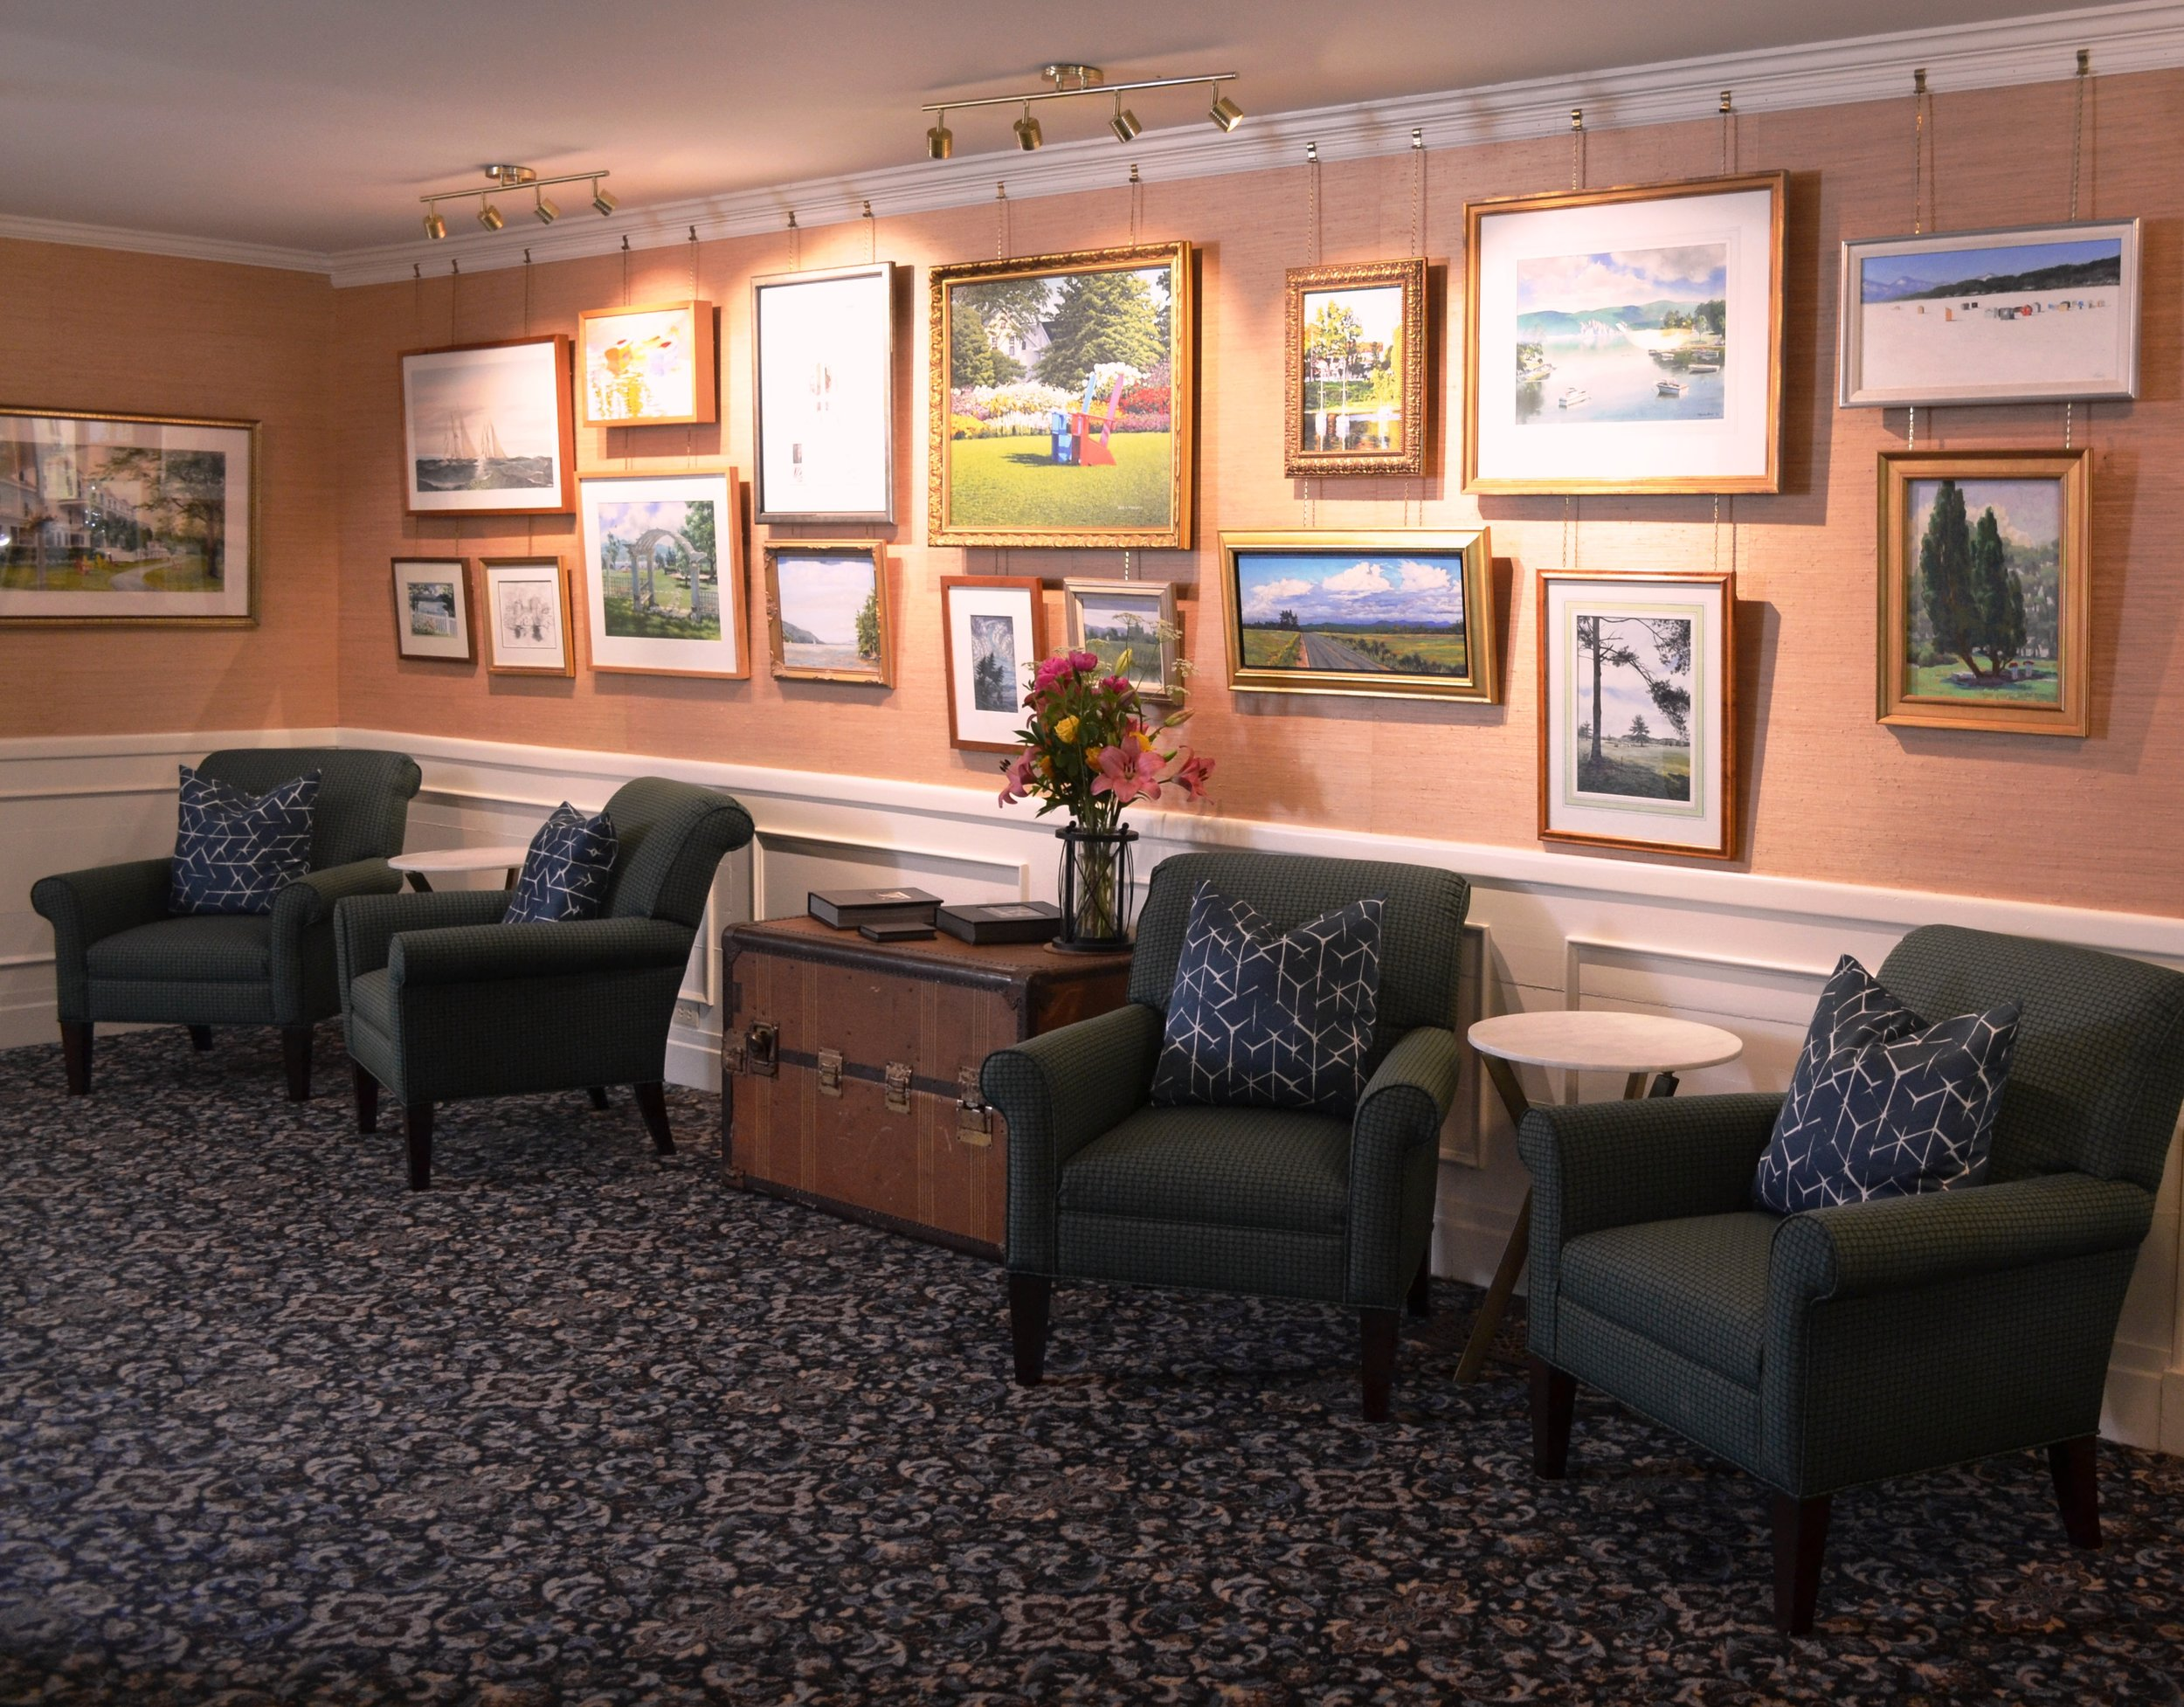 The renovated lobby, including the new art gallery wall!